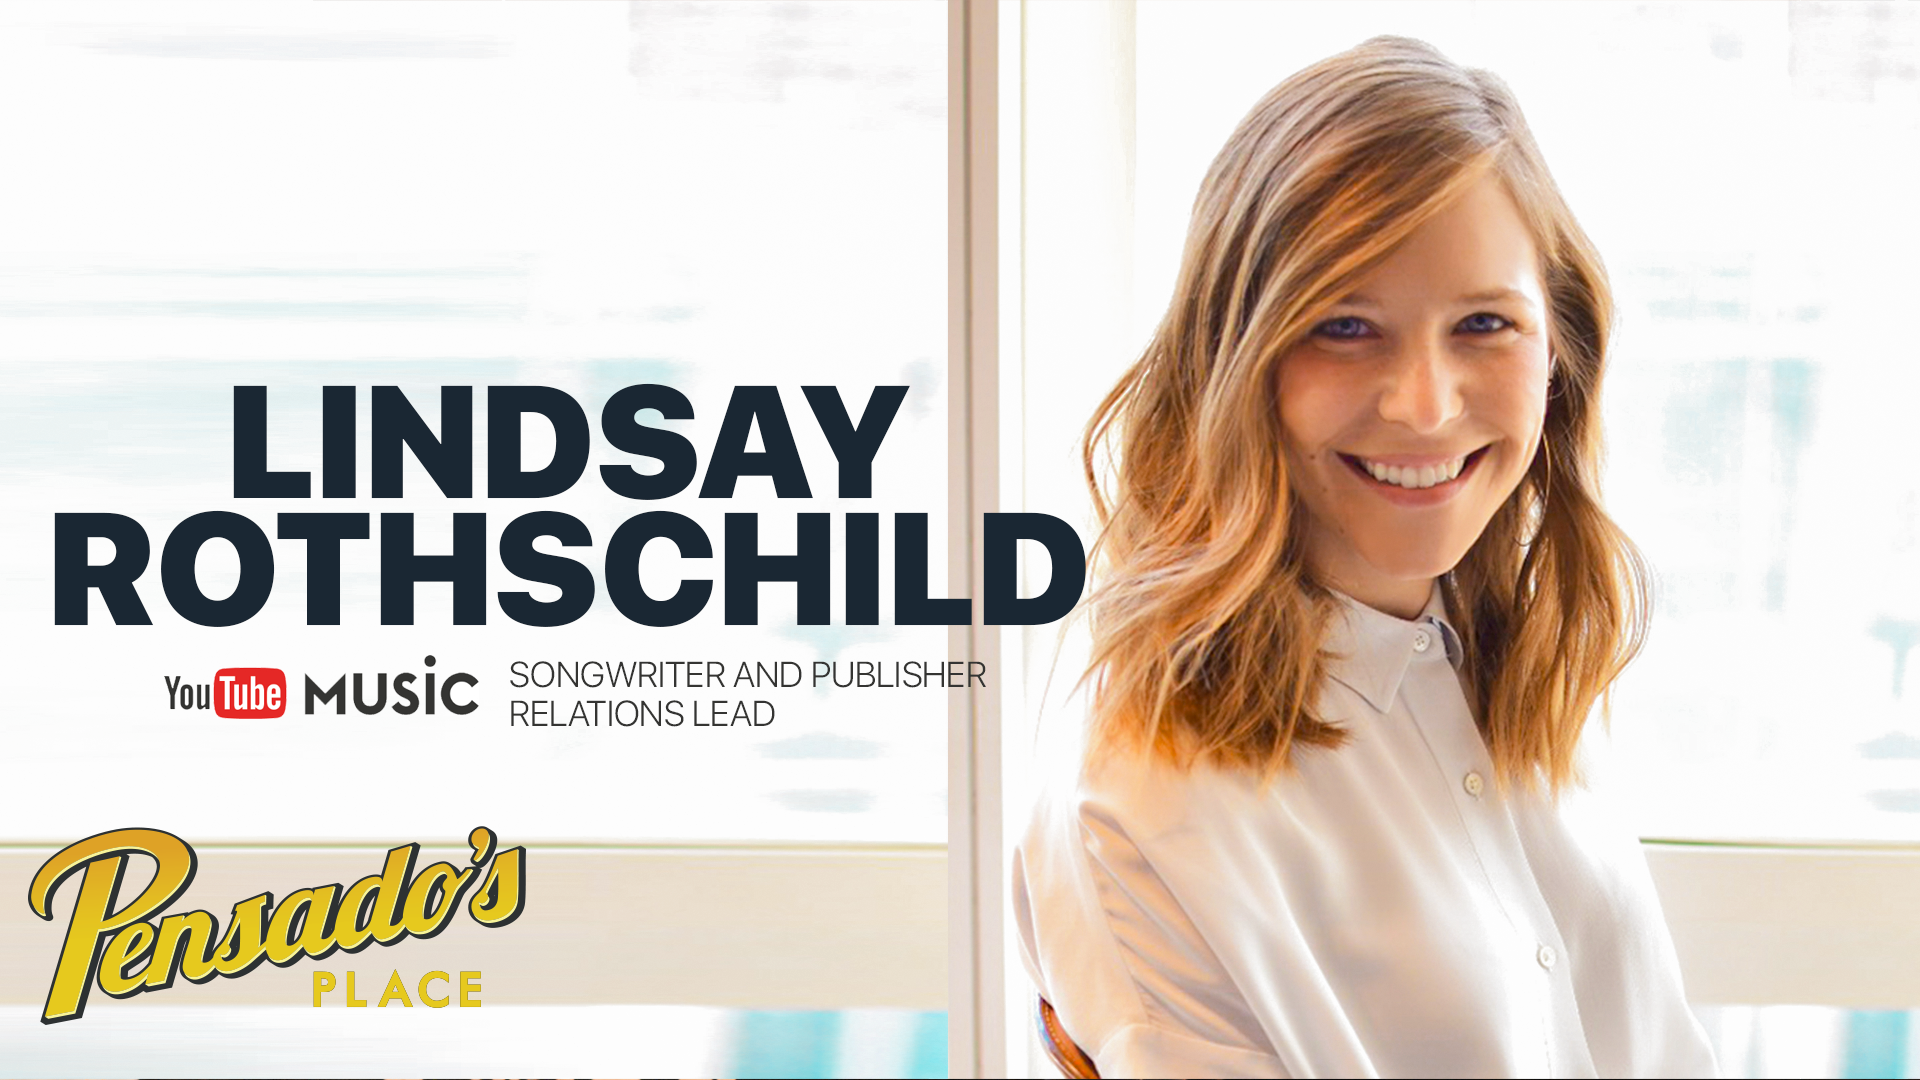 YouTube Songwriter & Publisher Relations Lead, Lindsay Rothschild